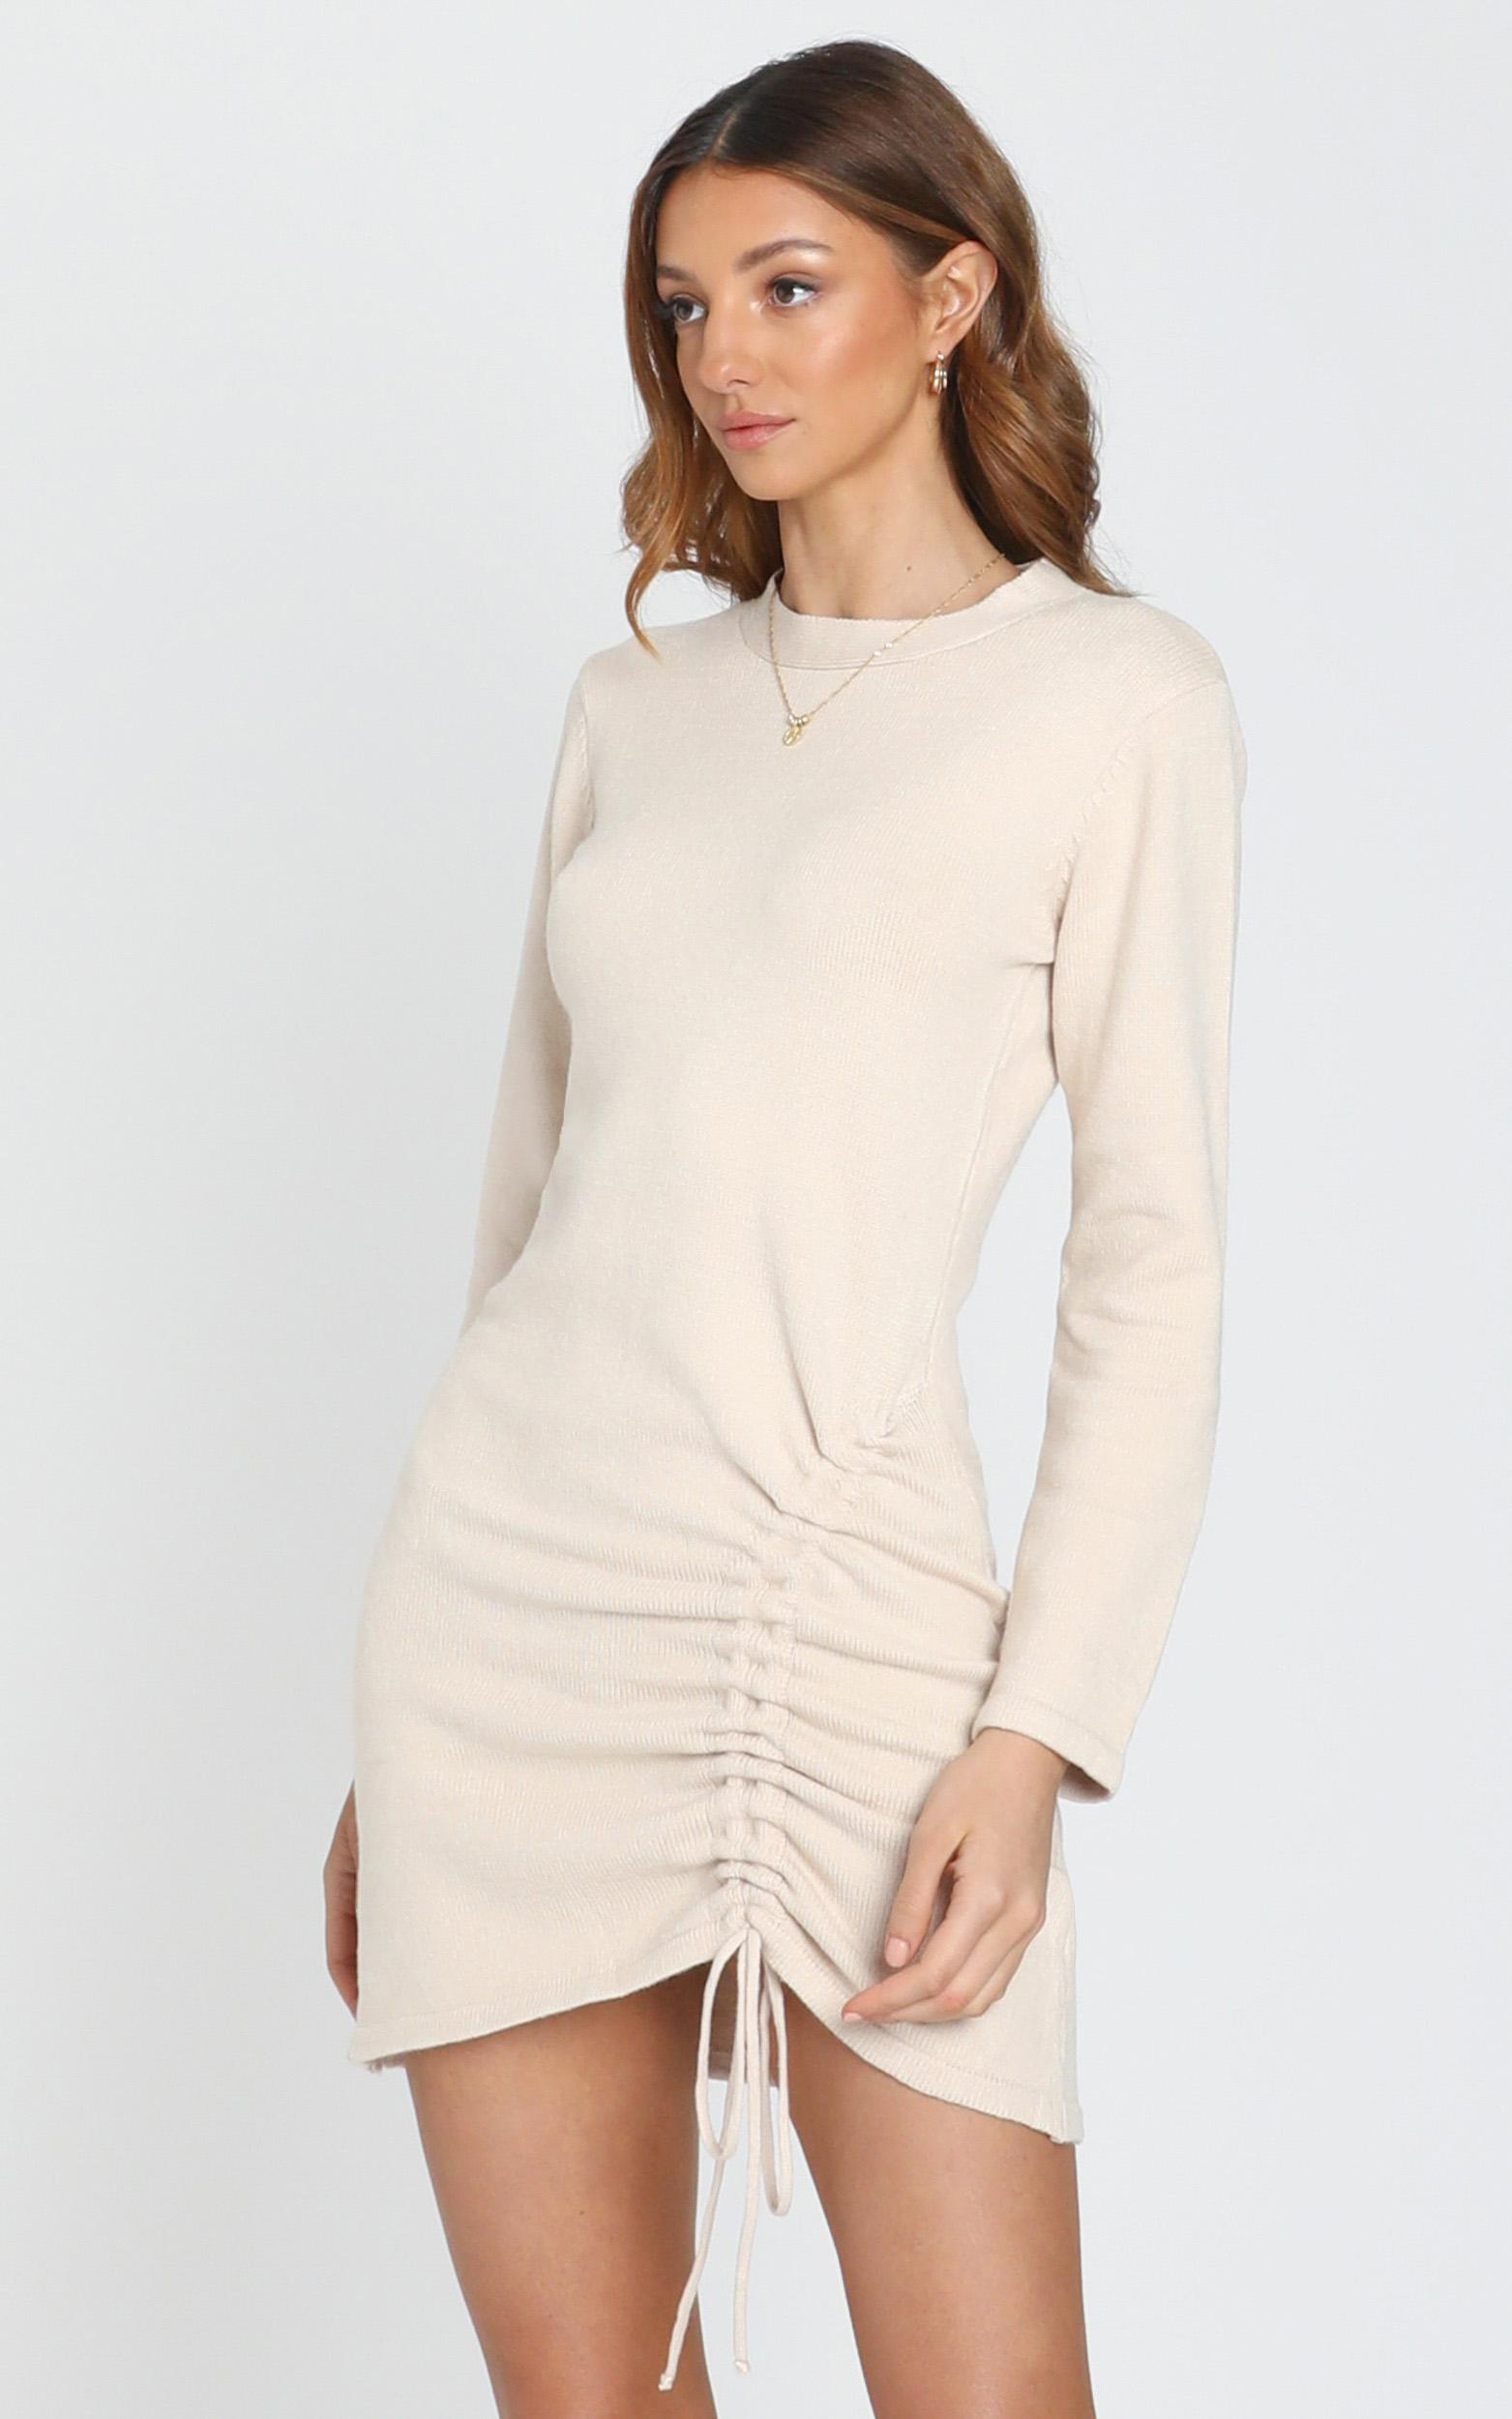 Casual Luxe Knit Dress in  Beige - S, Beige, hi-res image number null